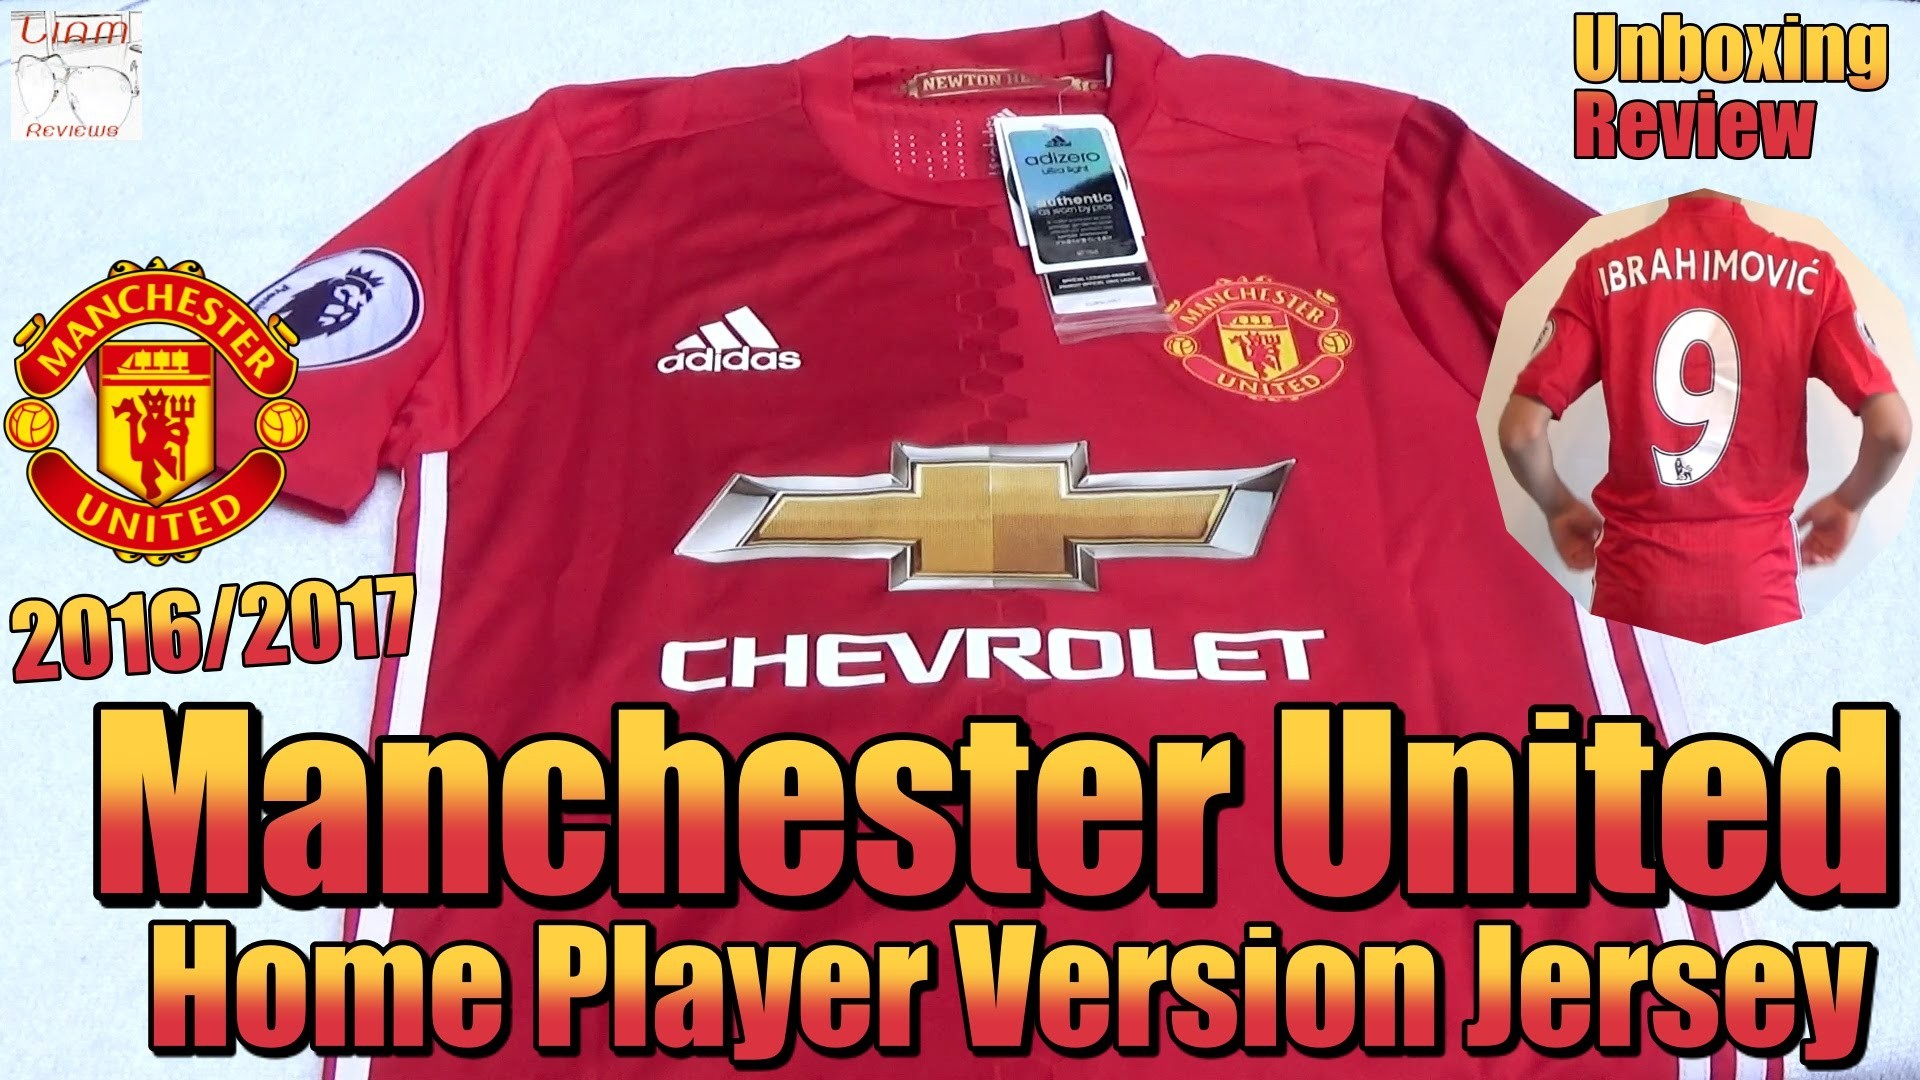 Adidas 2016/17 Manchester United Home Jersey | Zlatan Ibrahimovic #9 |  Unboxing/Review – YouTube